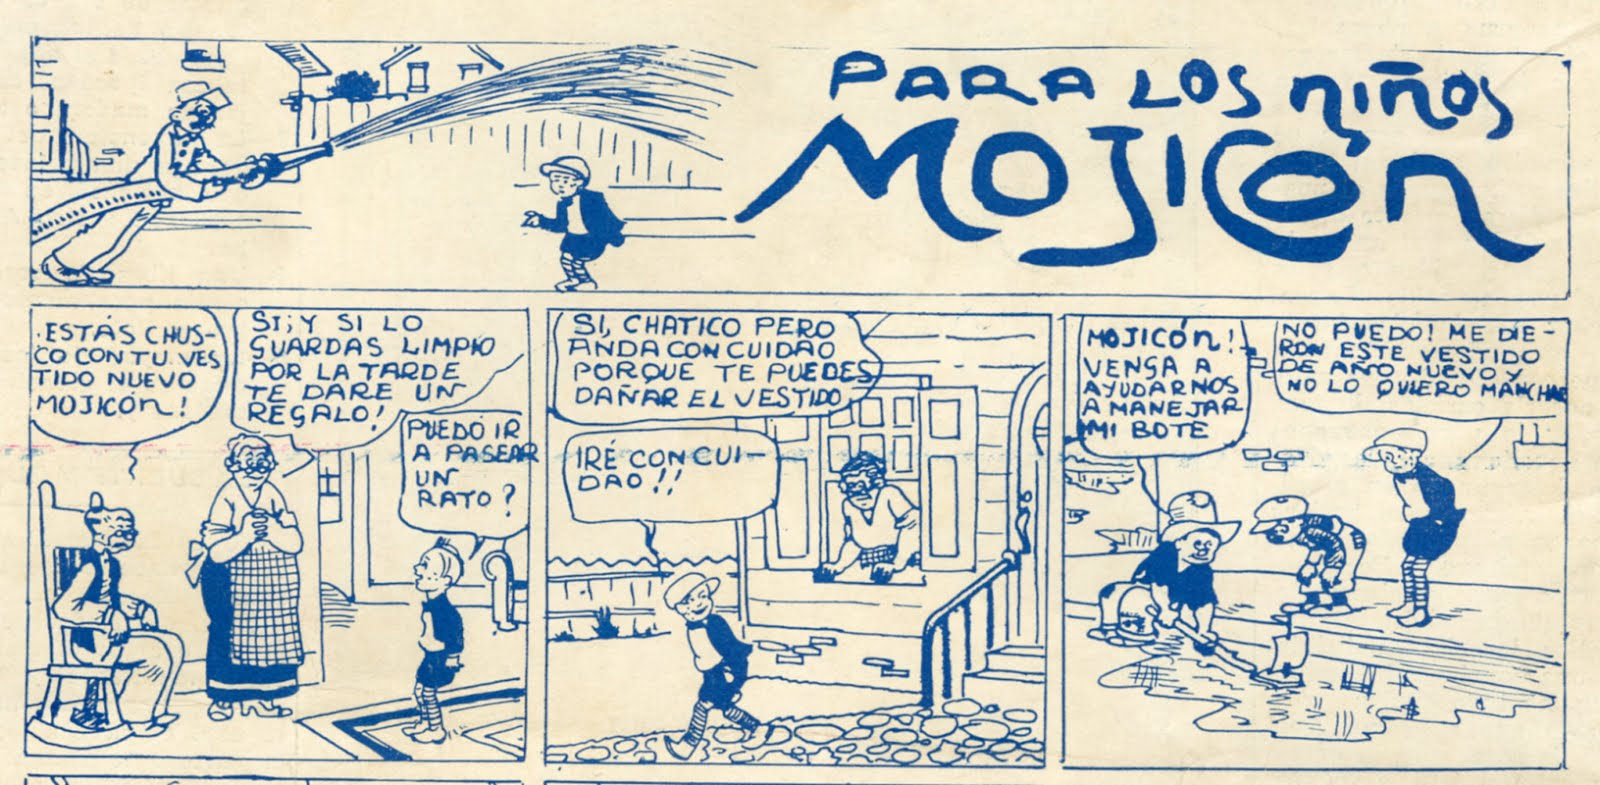 Mojicón panel, Colombia's first comic strip